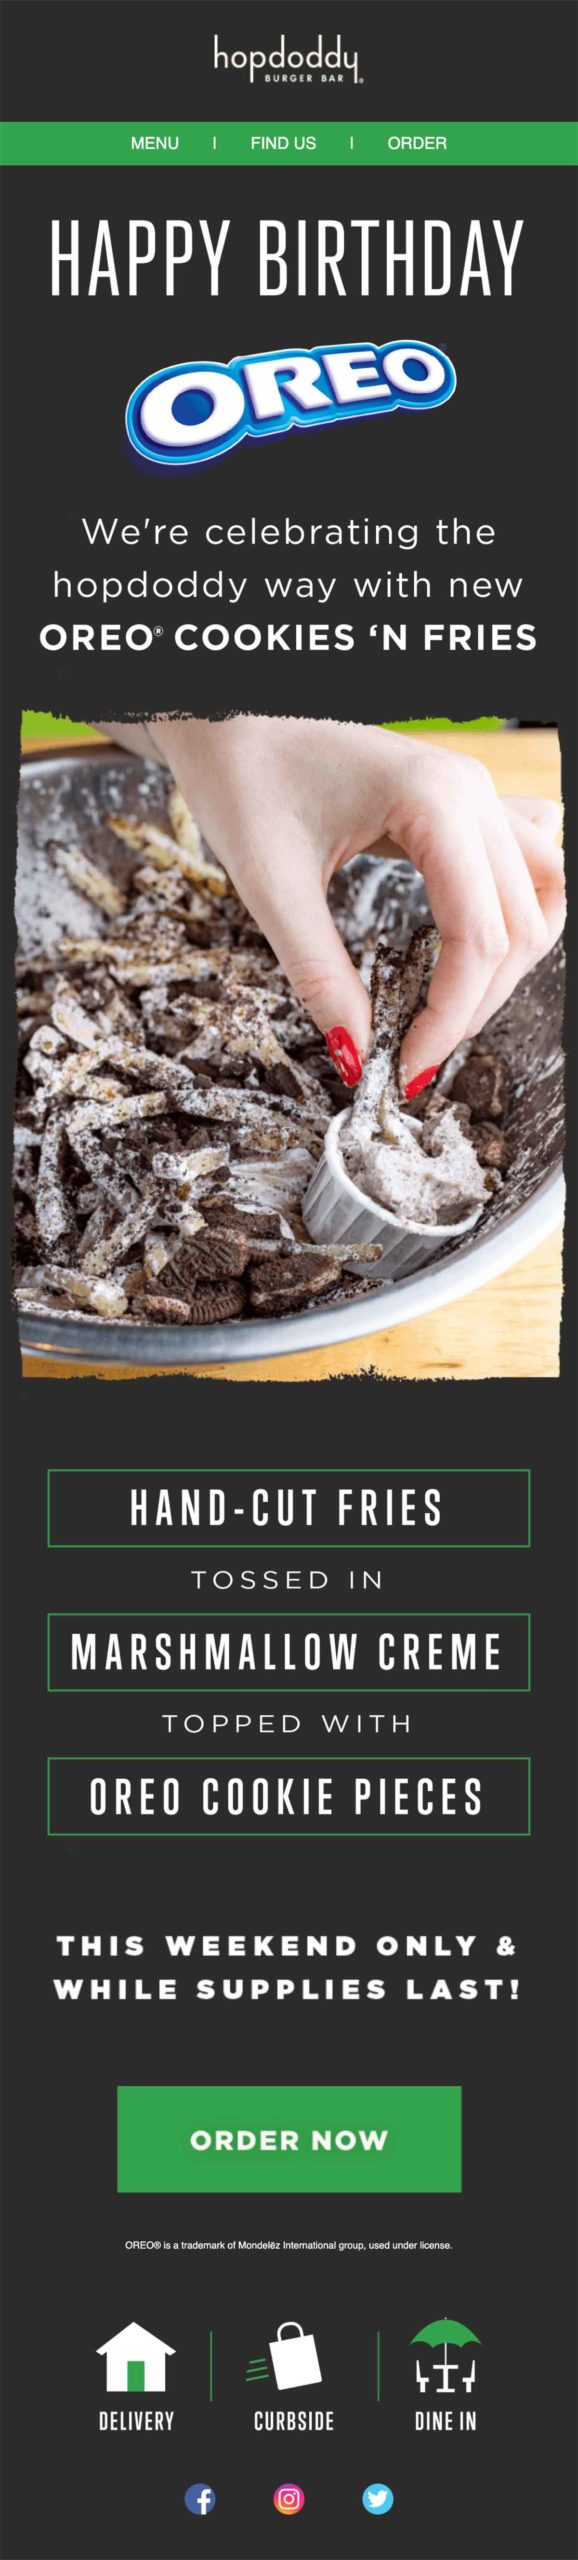 Hopdoddy Burger Bar email for birthdays with Oreo fries